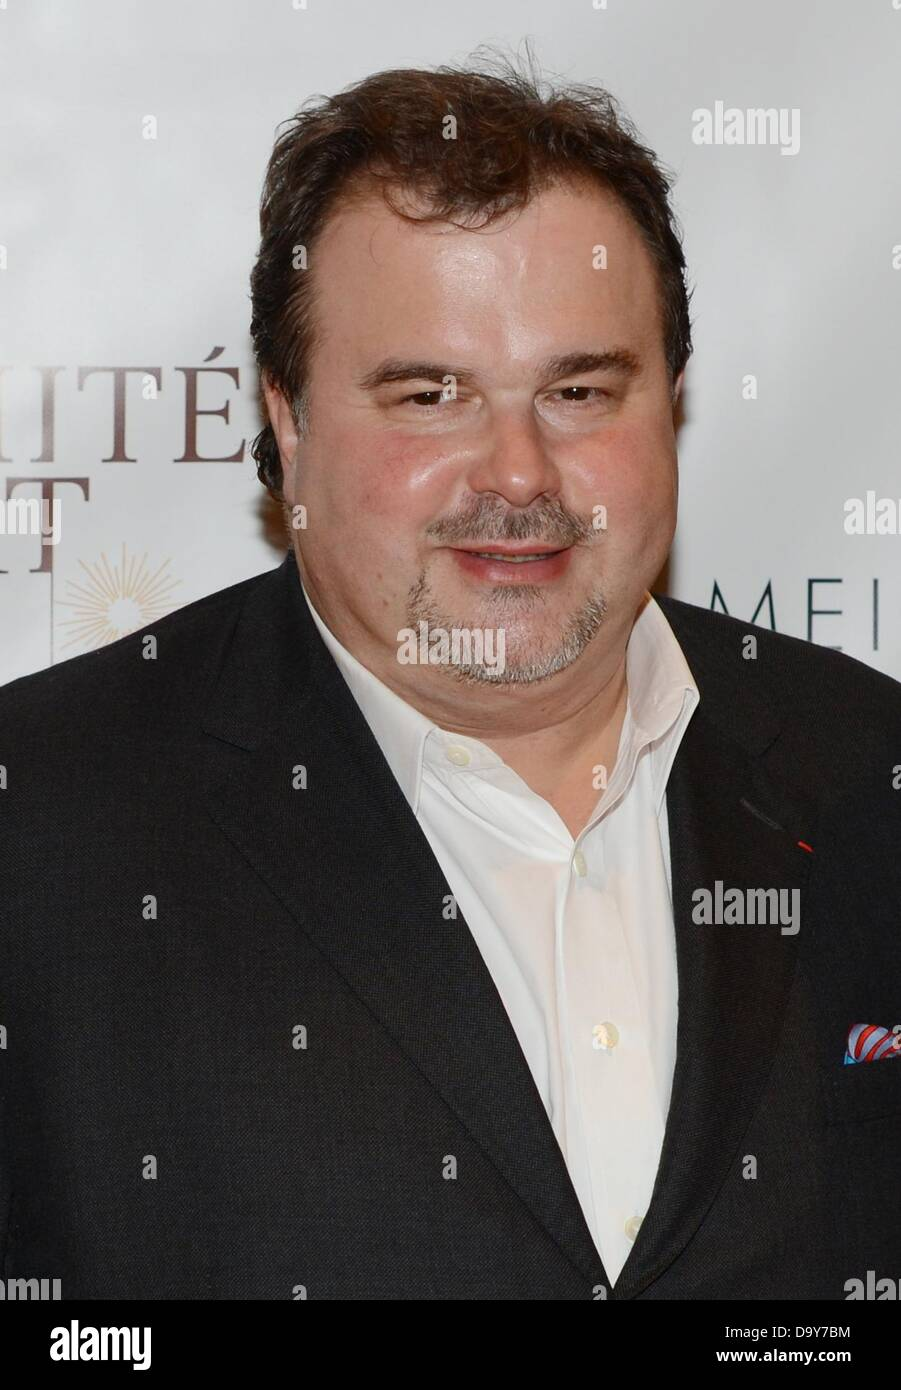 Pierre Hermé, French star confectioner, is pictured during a statement round of the German association of luxury - Stock Image